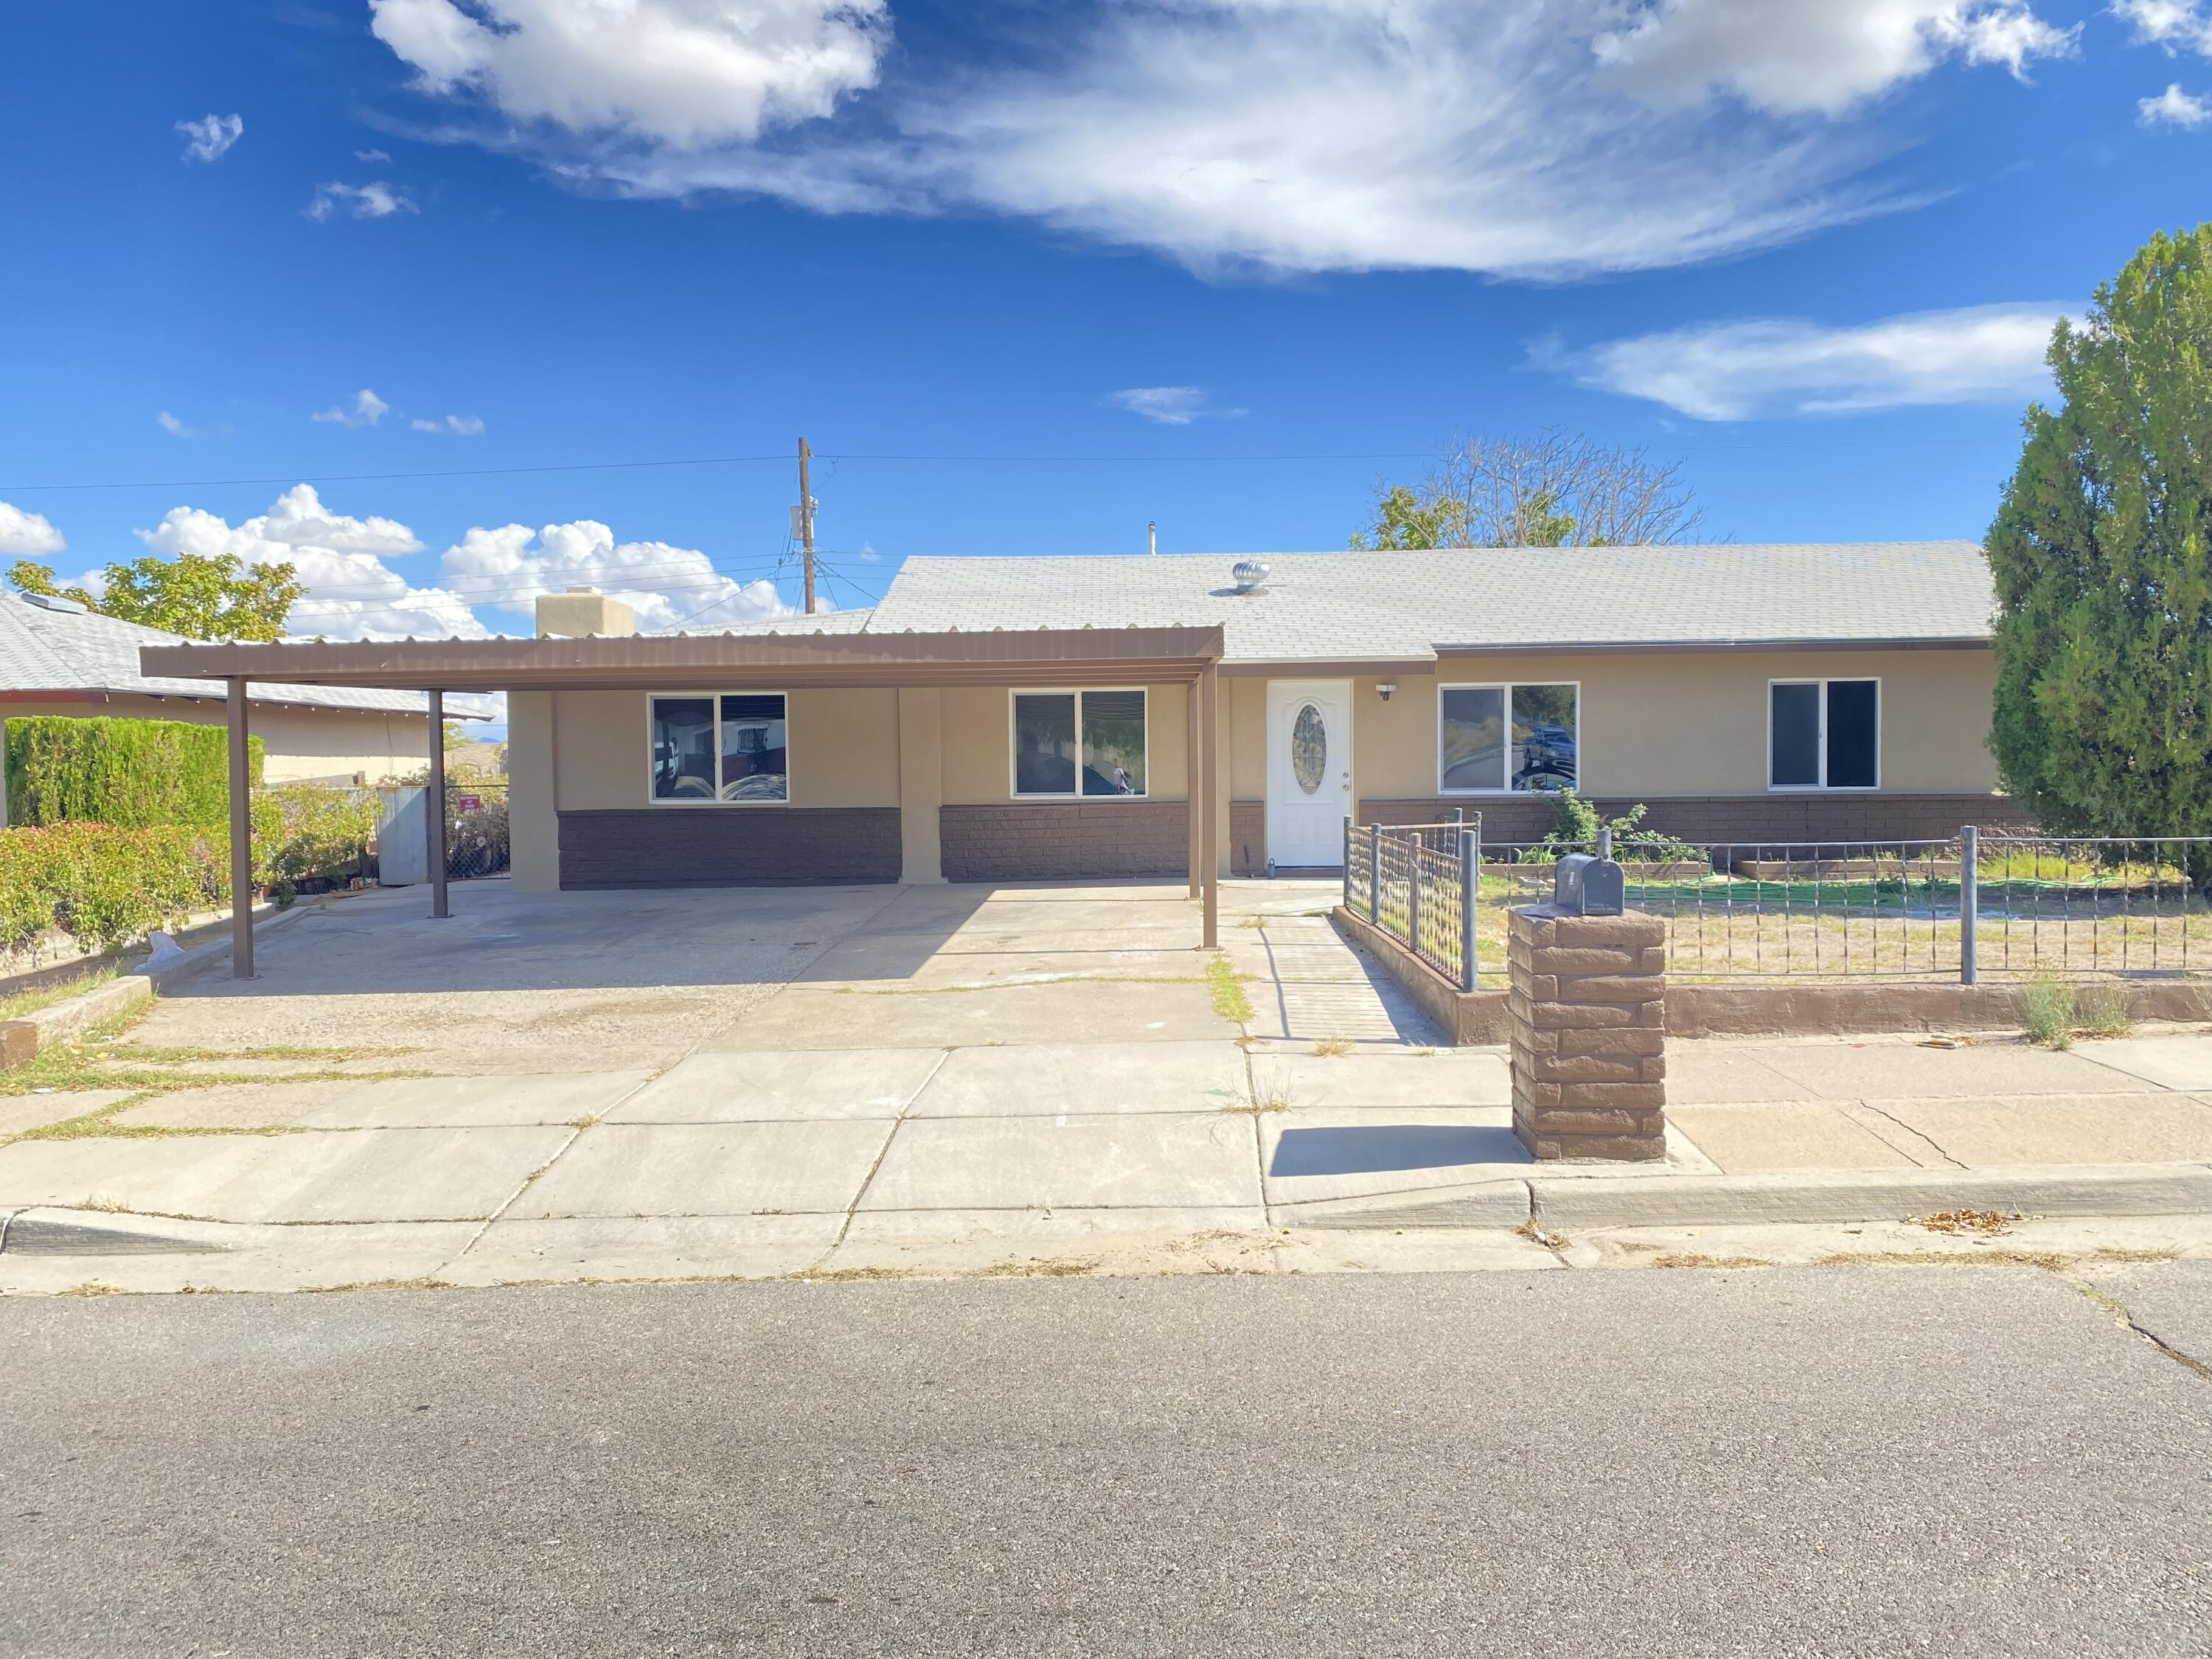 Beautiful 3 bdrm with many upgrades that will surely delight your pickiest buyers.  This home boasts New tile, windows, carpet, cabinets, light fixtures, synthetic stucco, paint, refrigerated air, etc.  Property has spacious yard with backyard access from alley.  Bring your clients and lets get this one SOLD!